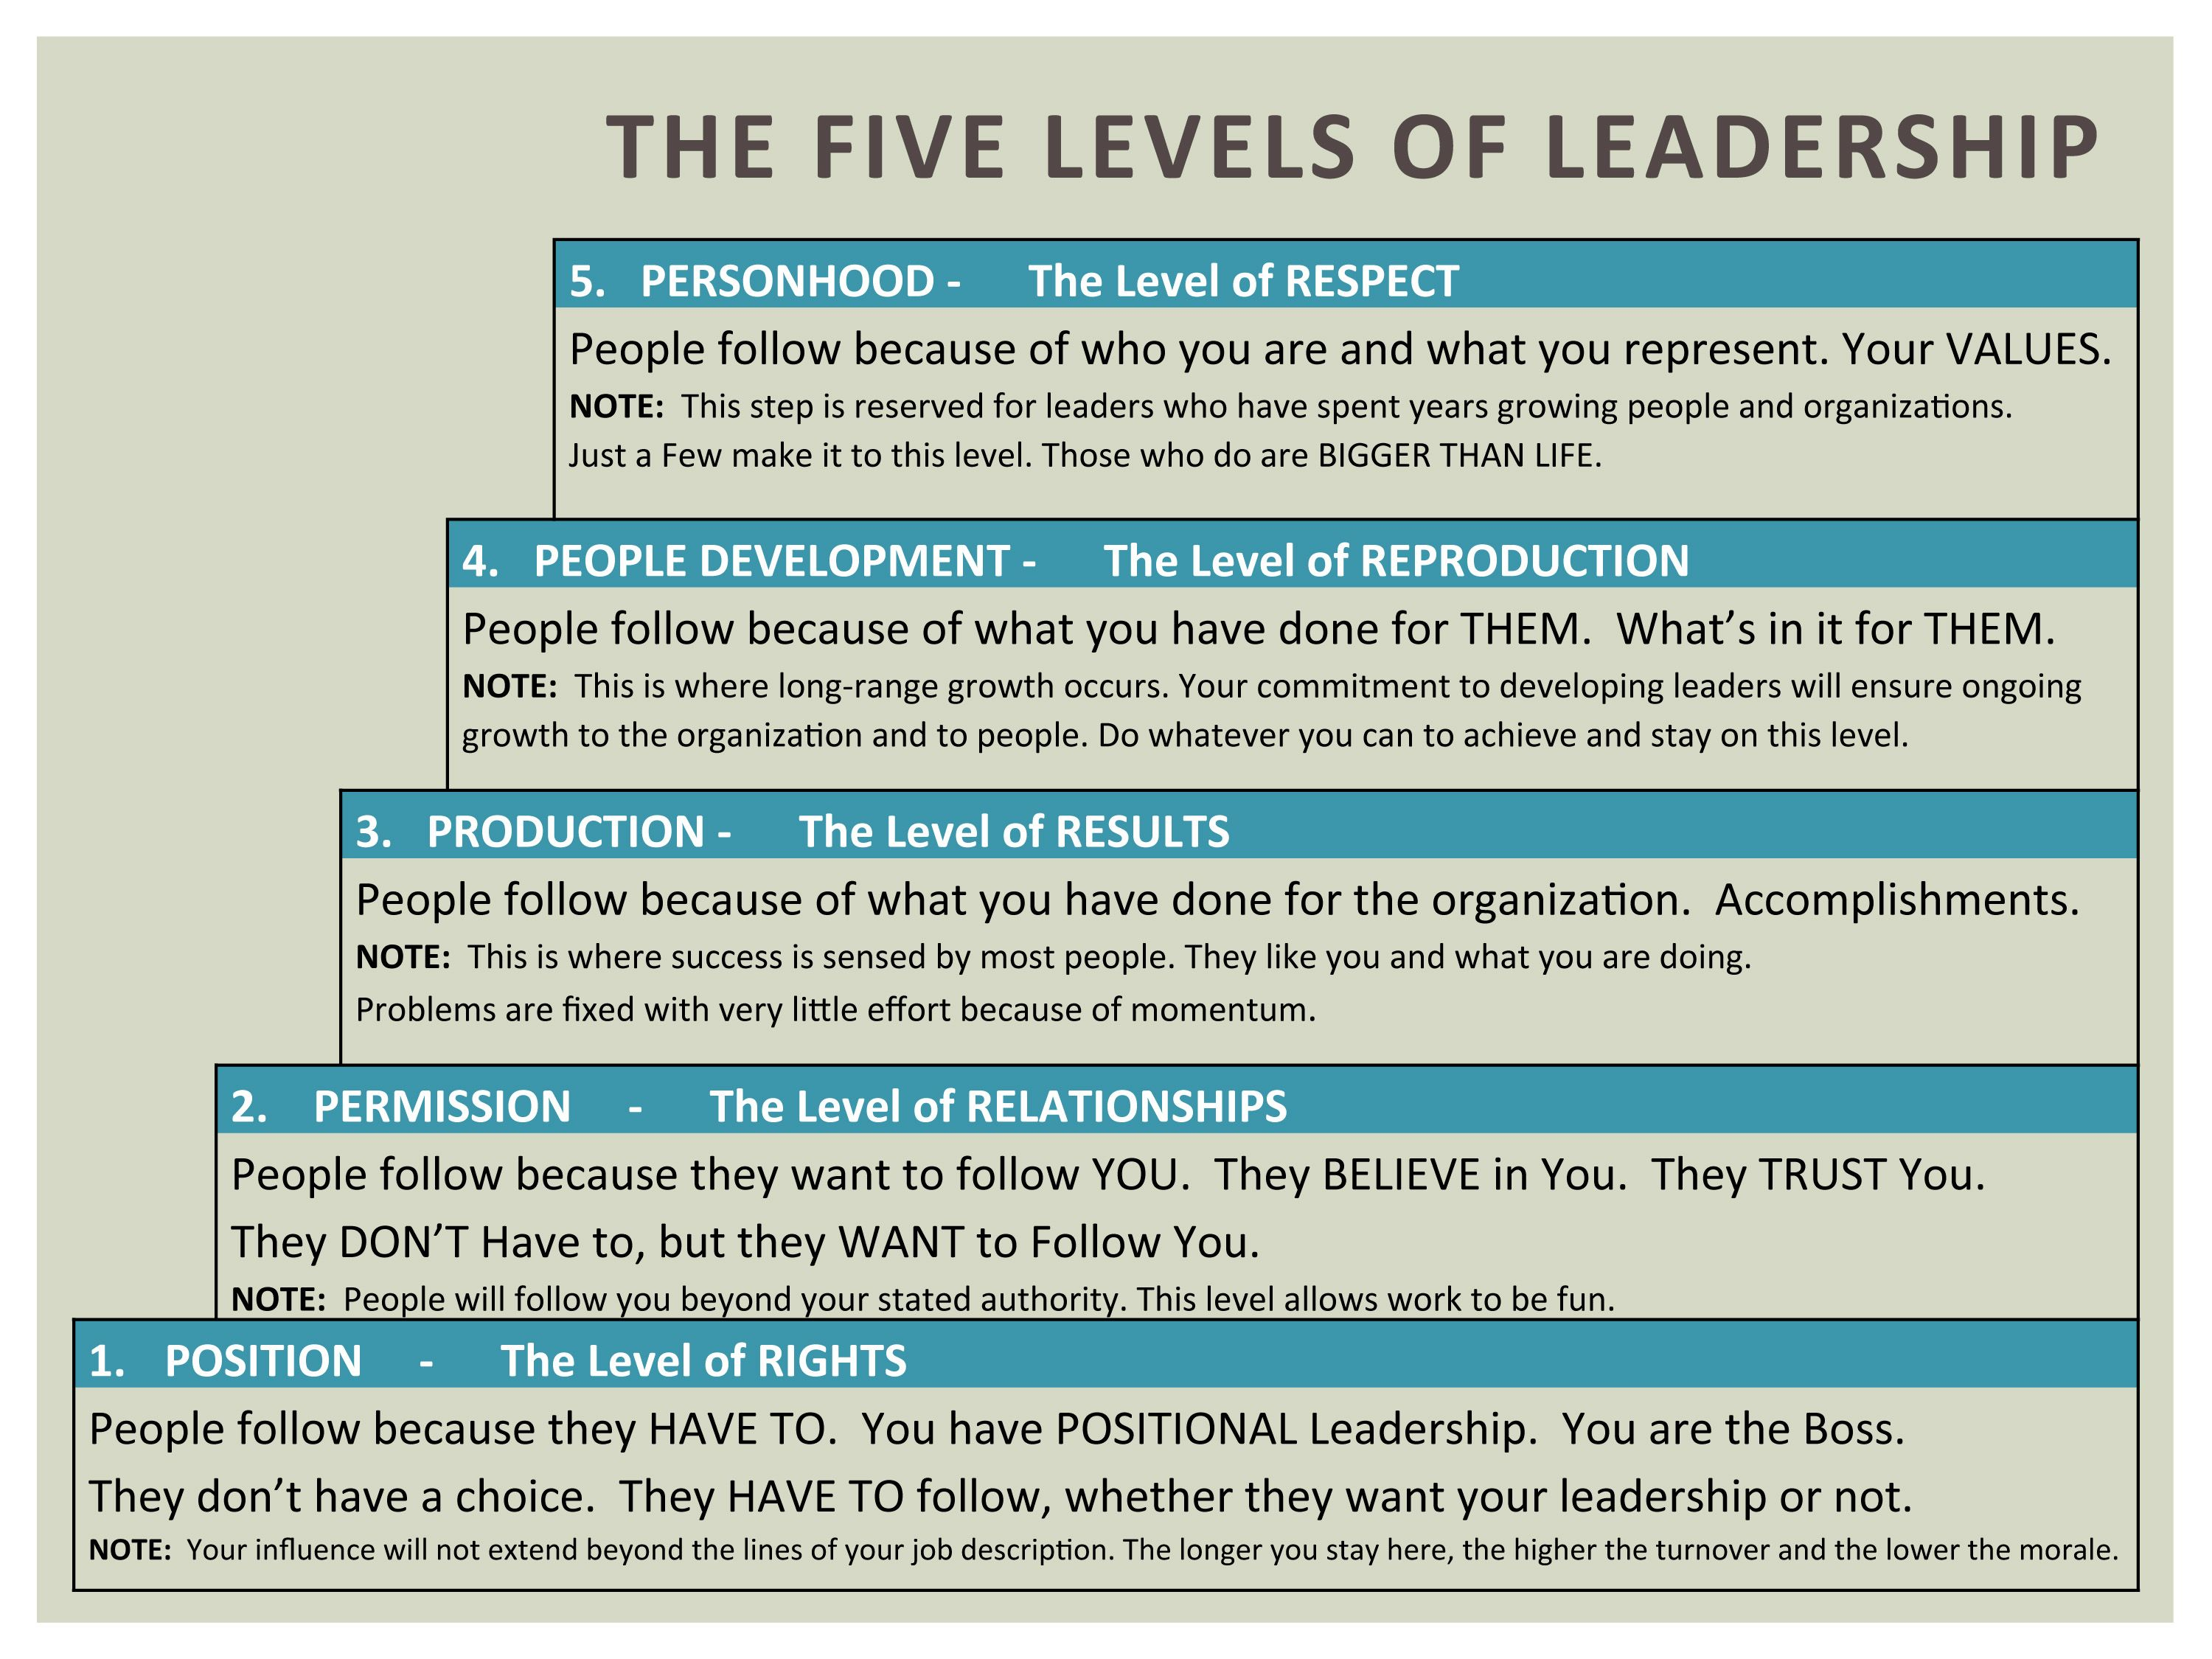 John Maxwells Five Levels Of Leadership What Level Are You On